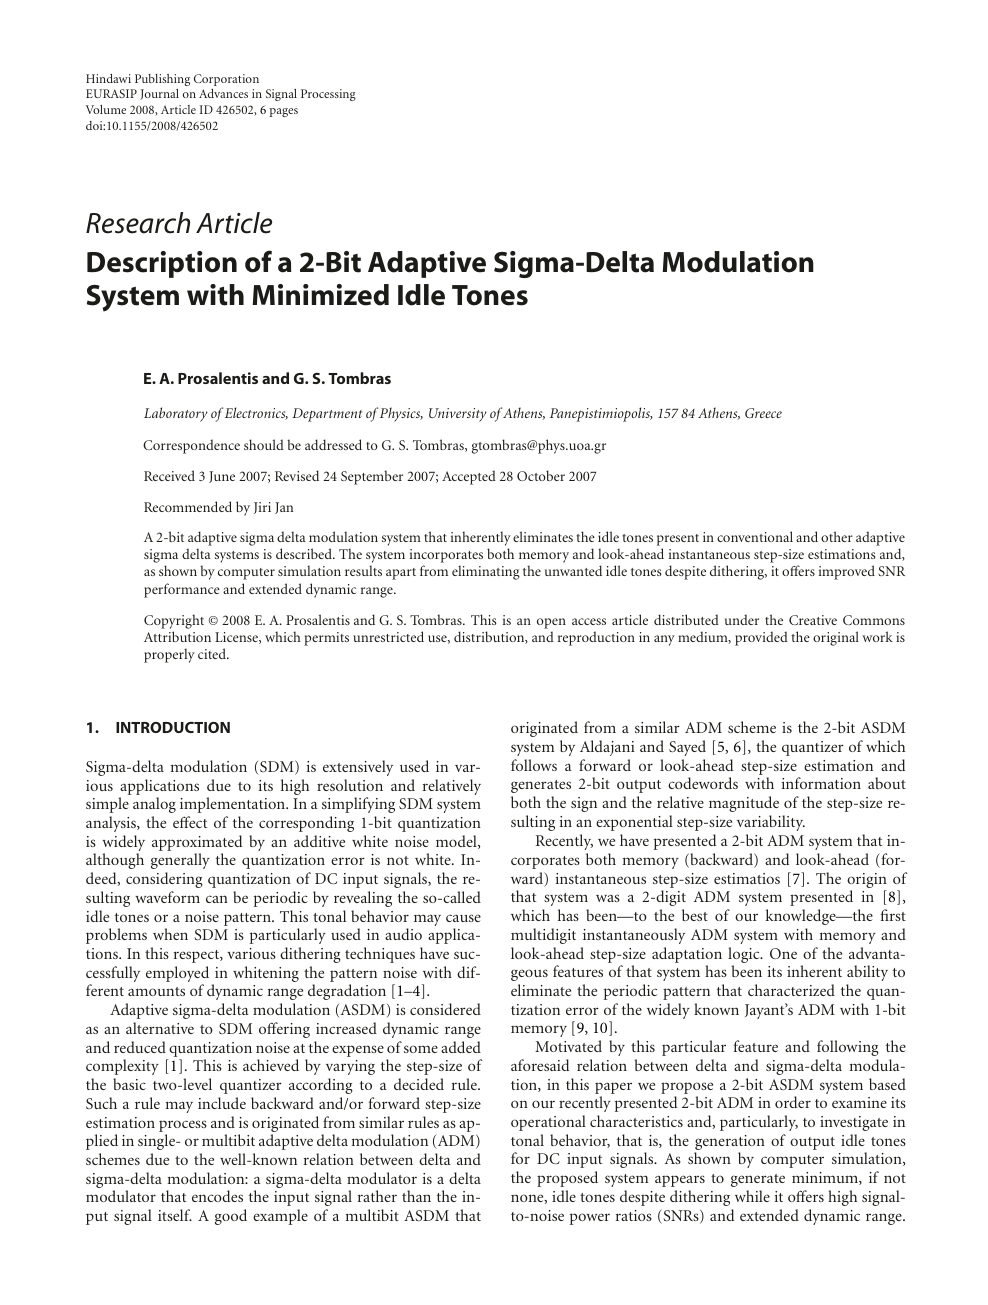 Look-Ahead Based Sigma-Delta Modulation (Analog Circuits and Signal Processing)